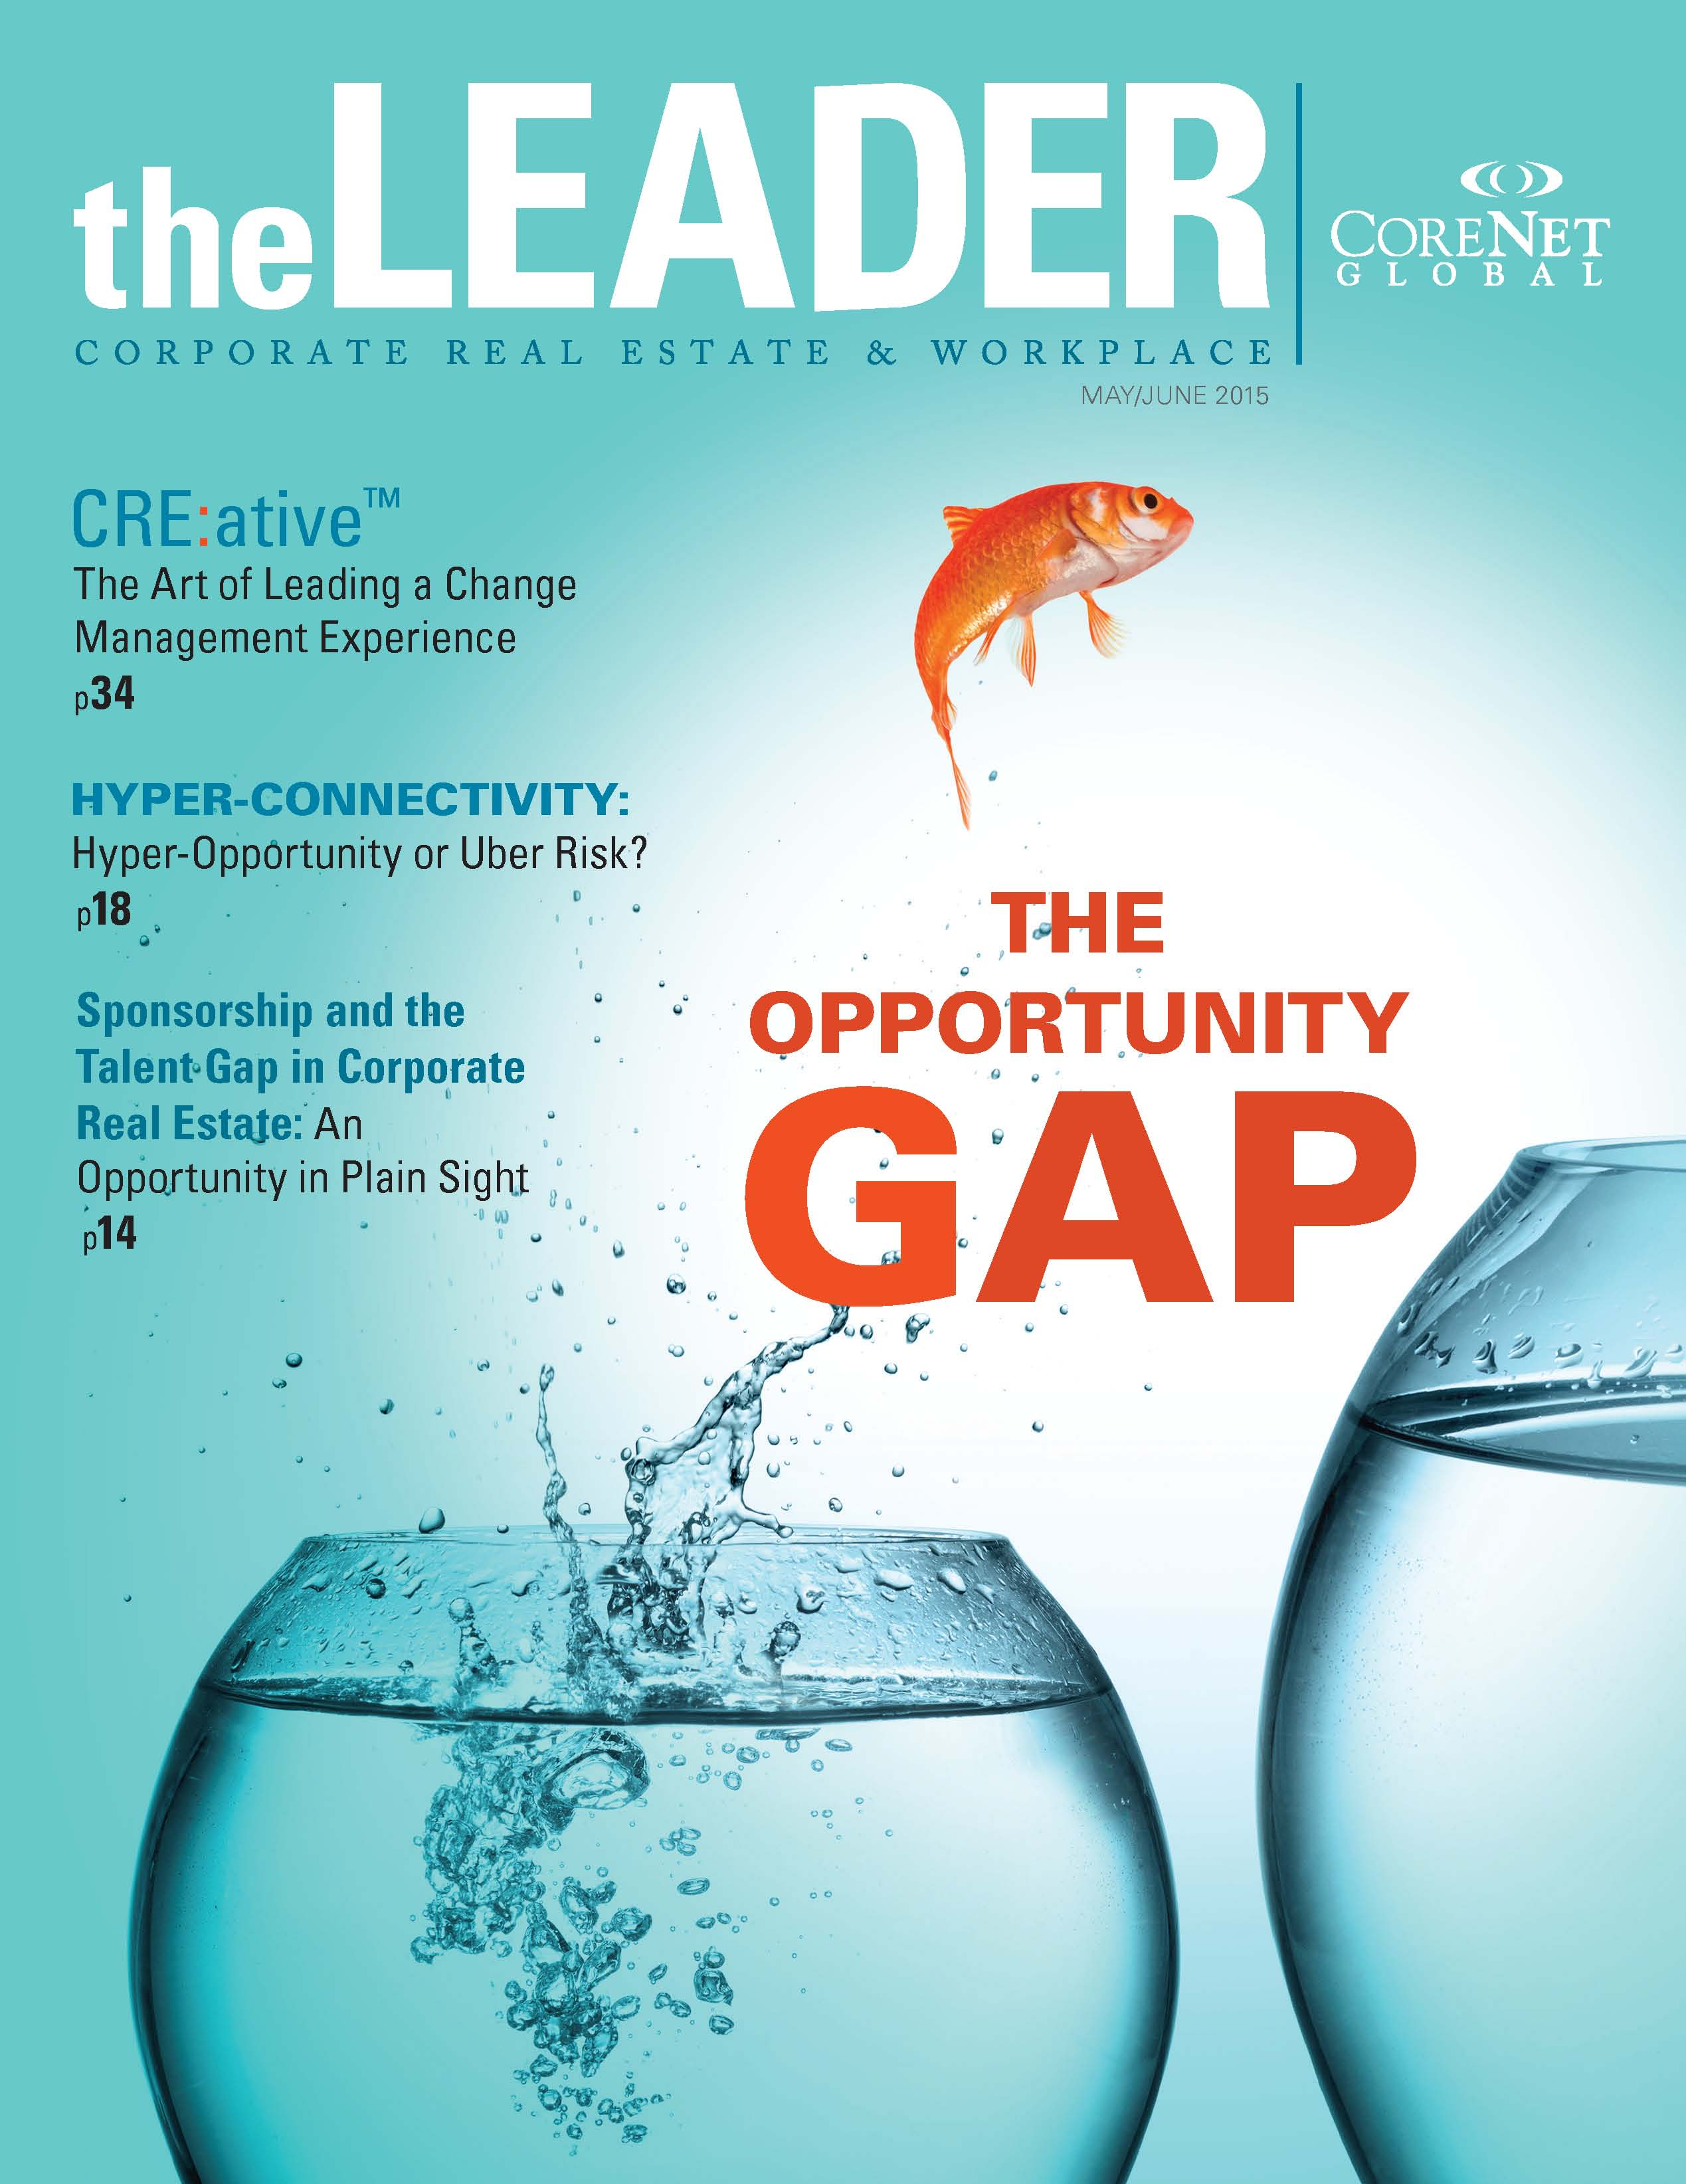 the LEADER May/June 2015